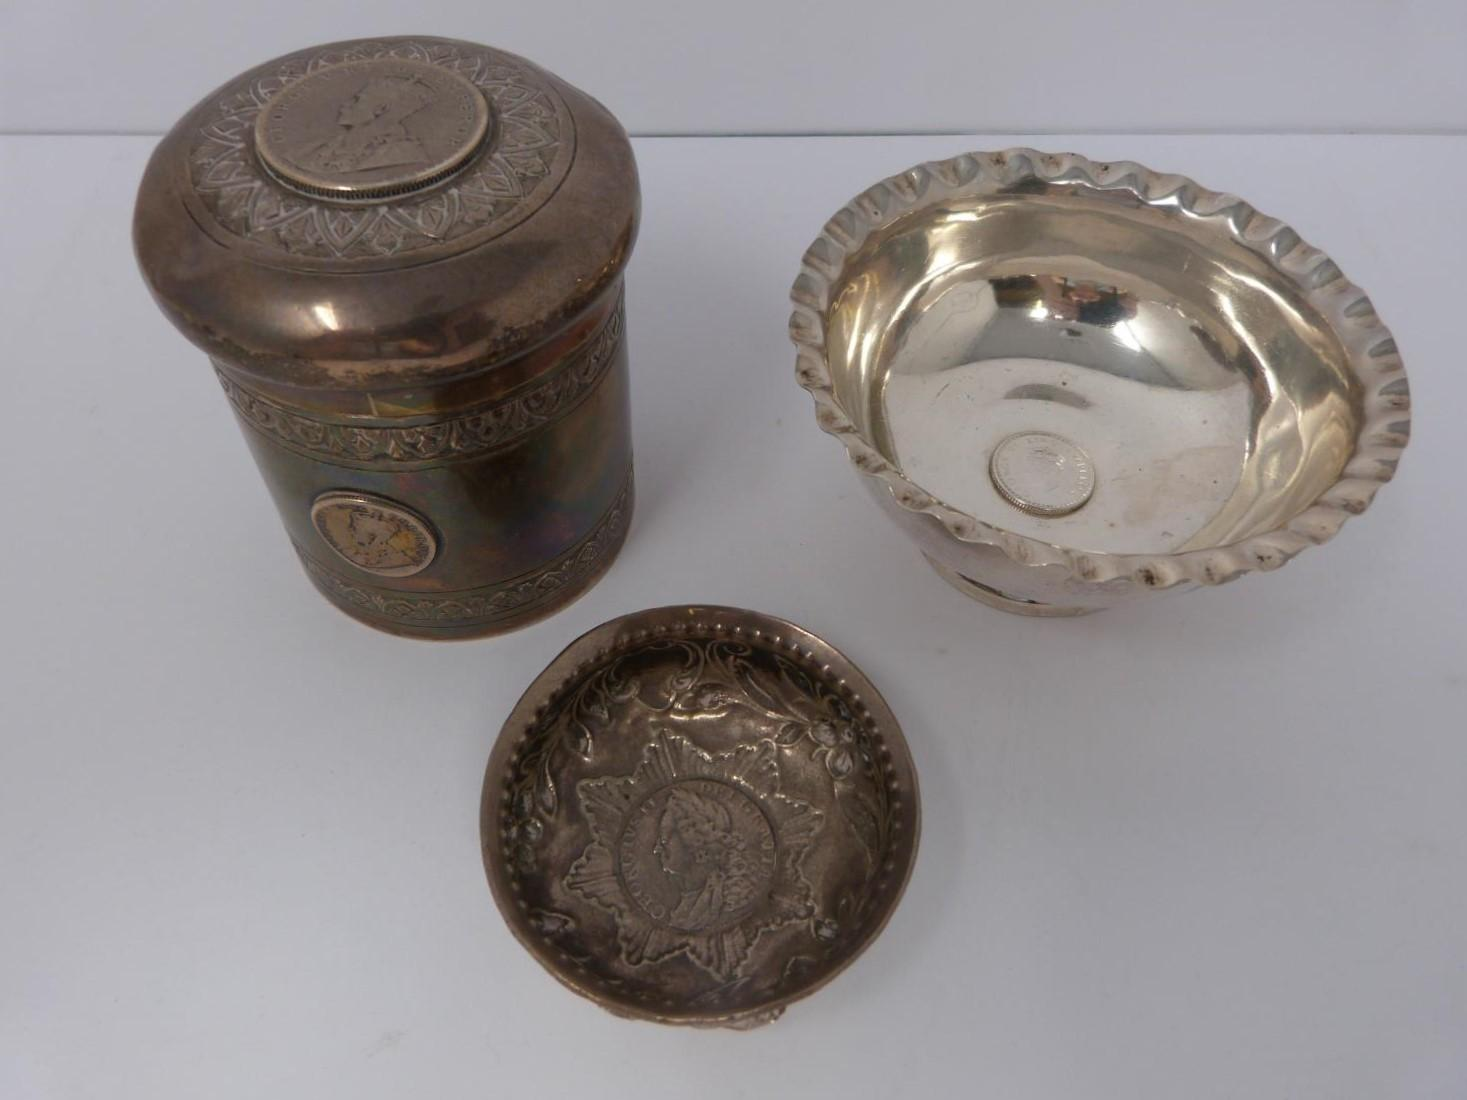 A collection of white metal dishes and a box decorated with coins and a silver and horn twist handle